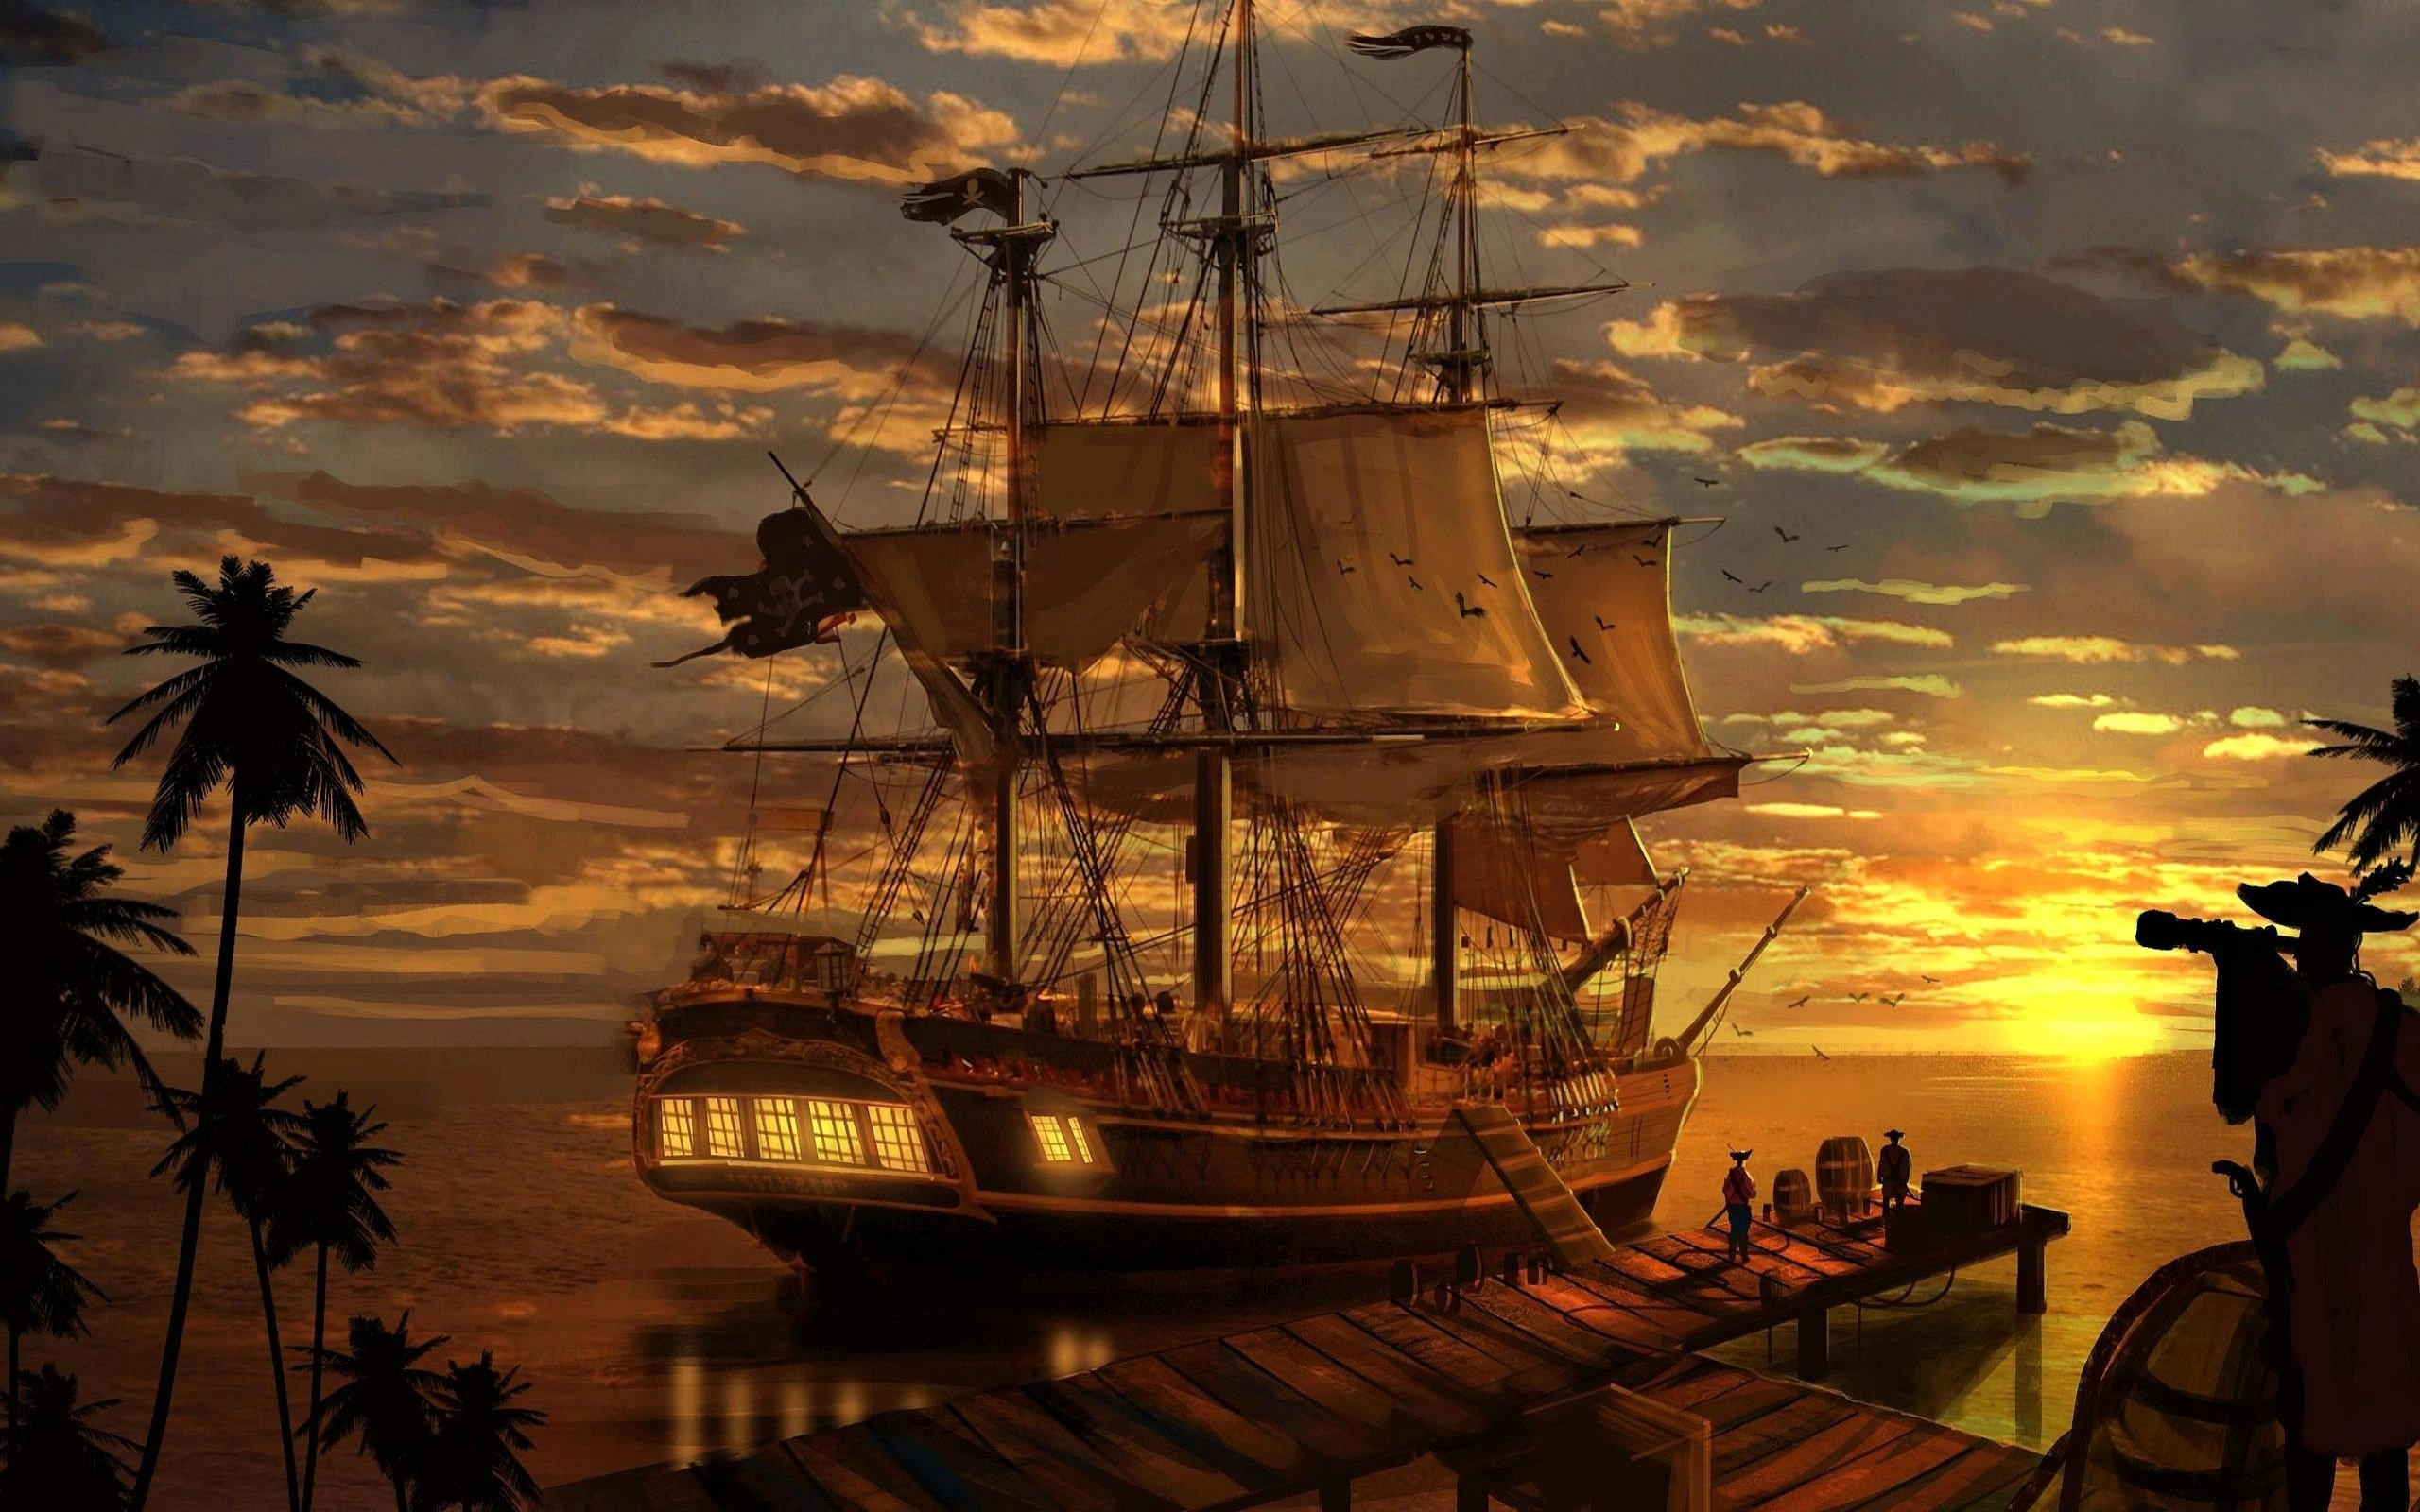 Fantasy ship cliff jolly roger pirate ship rock lightning wallpaper - Pin By Russ On Tattoo Designs Pinterest Pirate Ships Artwork And Tattoo Designs